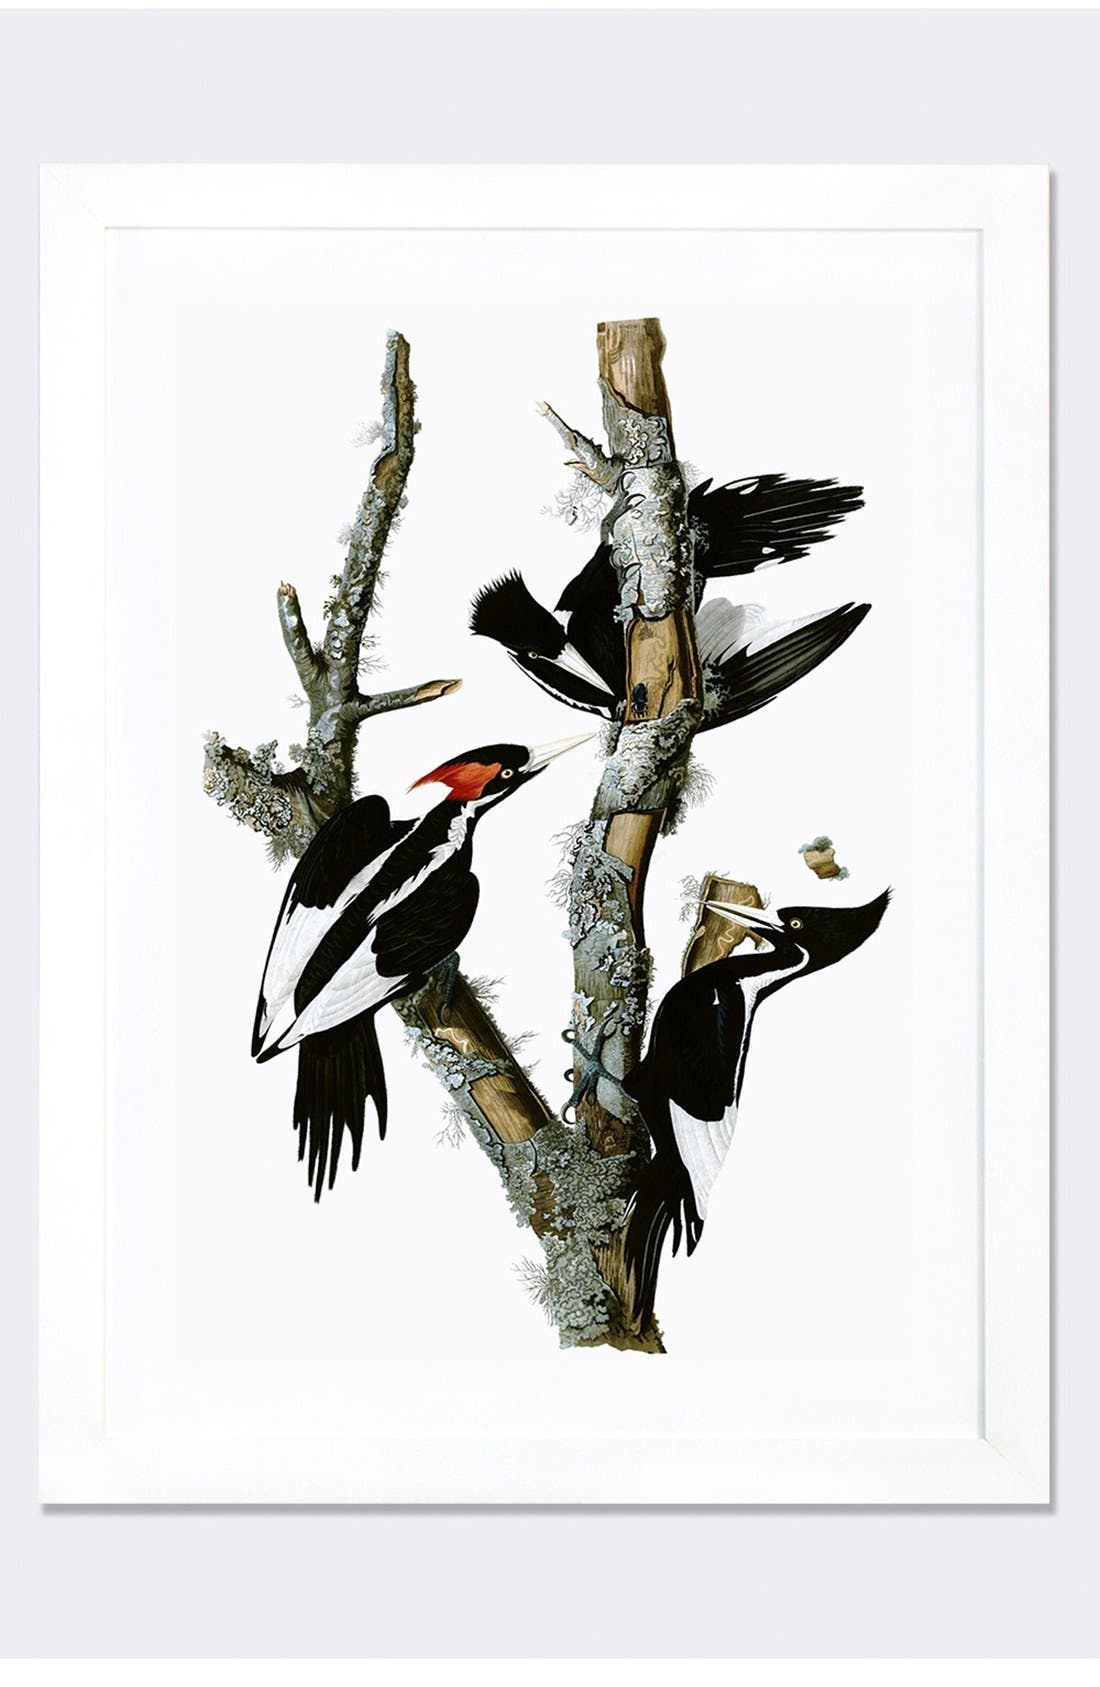 Alternate Image 1 Selected - iCanvas 'Ivory Billed Woodpecker' Framed Fine Art Print